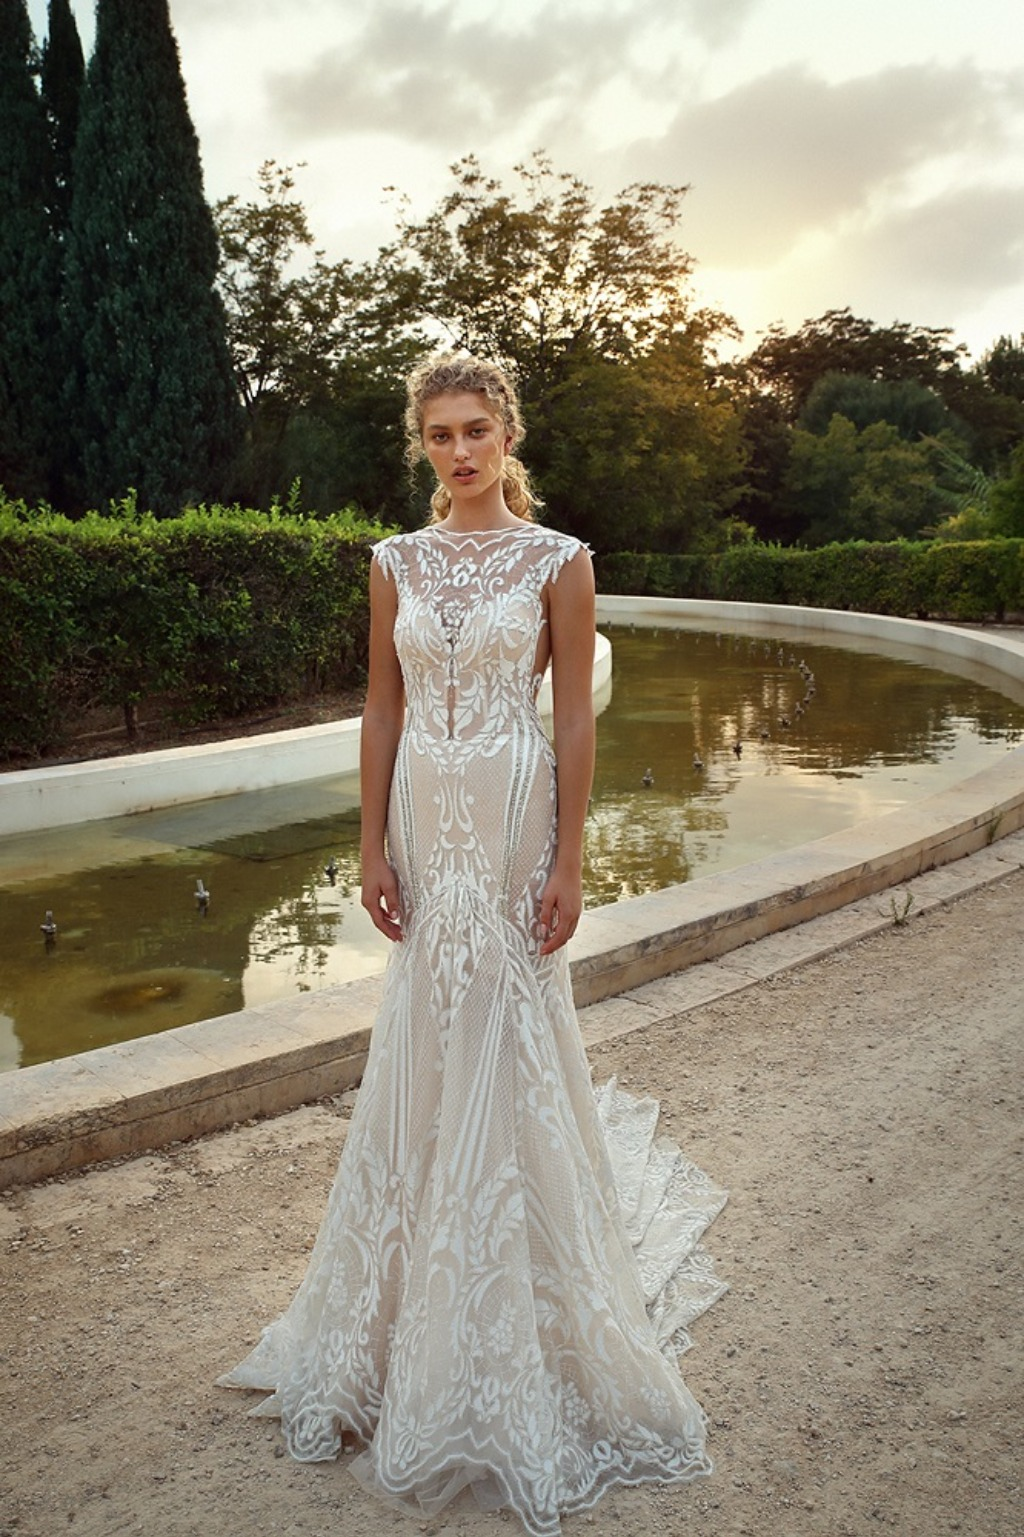 Highlighting Gala by Galia Lahav